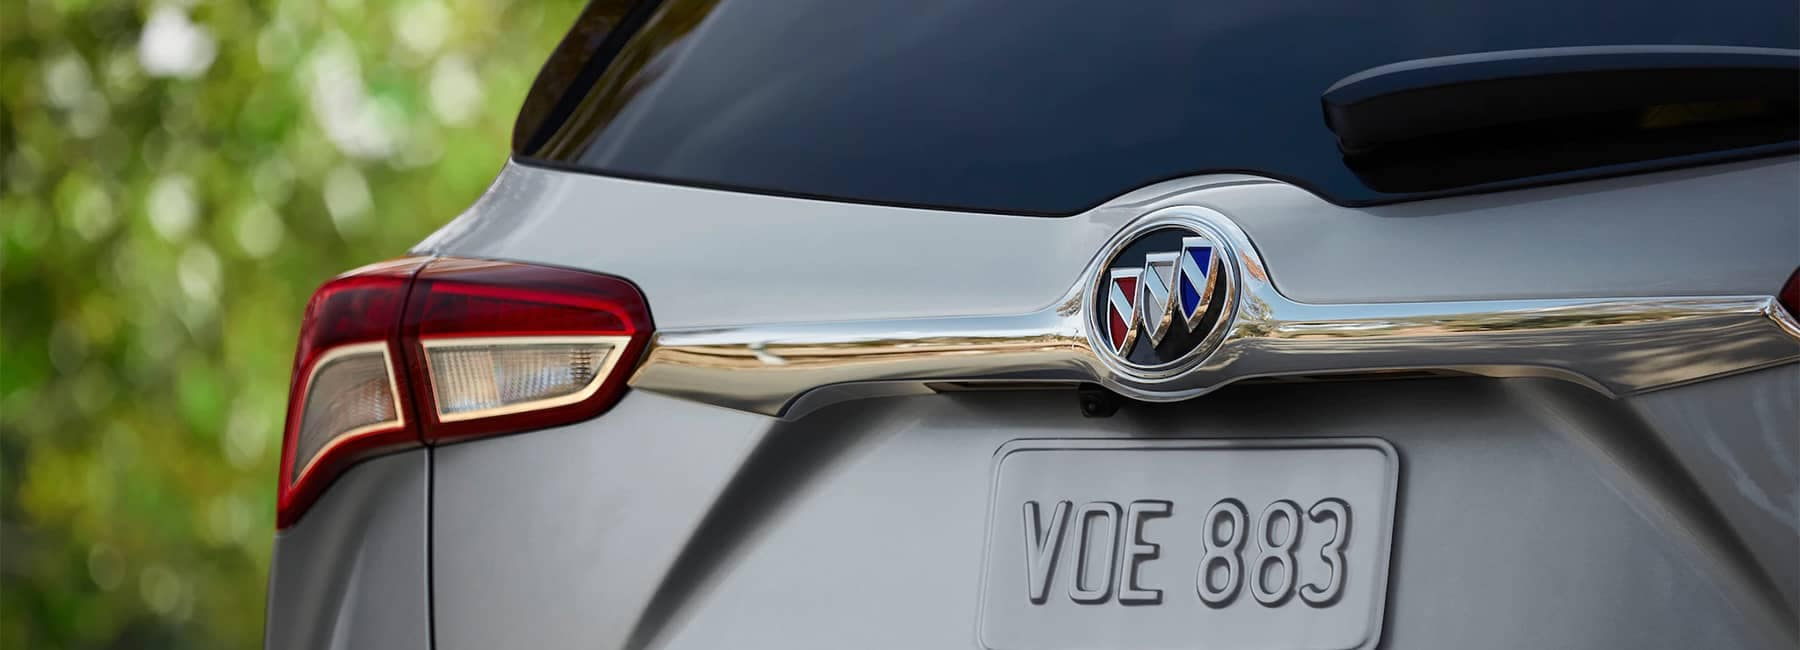 2020 Buick Envision Compact SUV Rear Liftgate Close Up